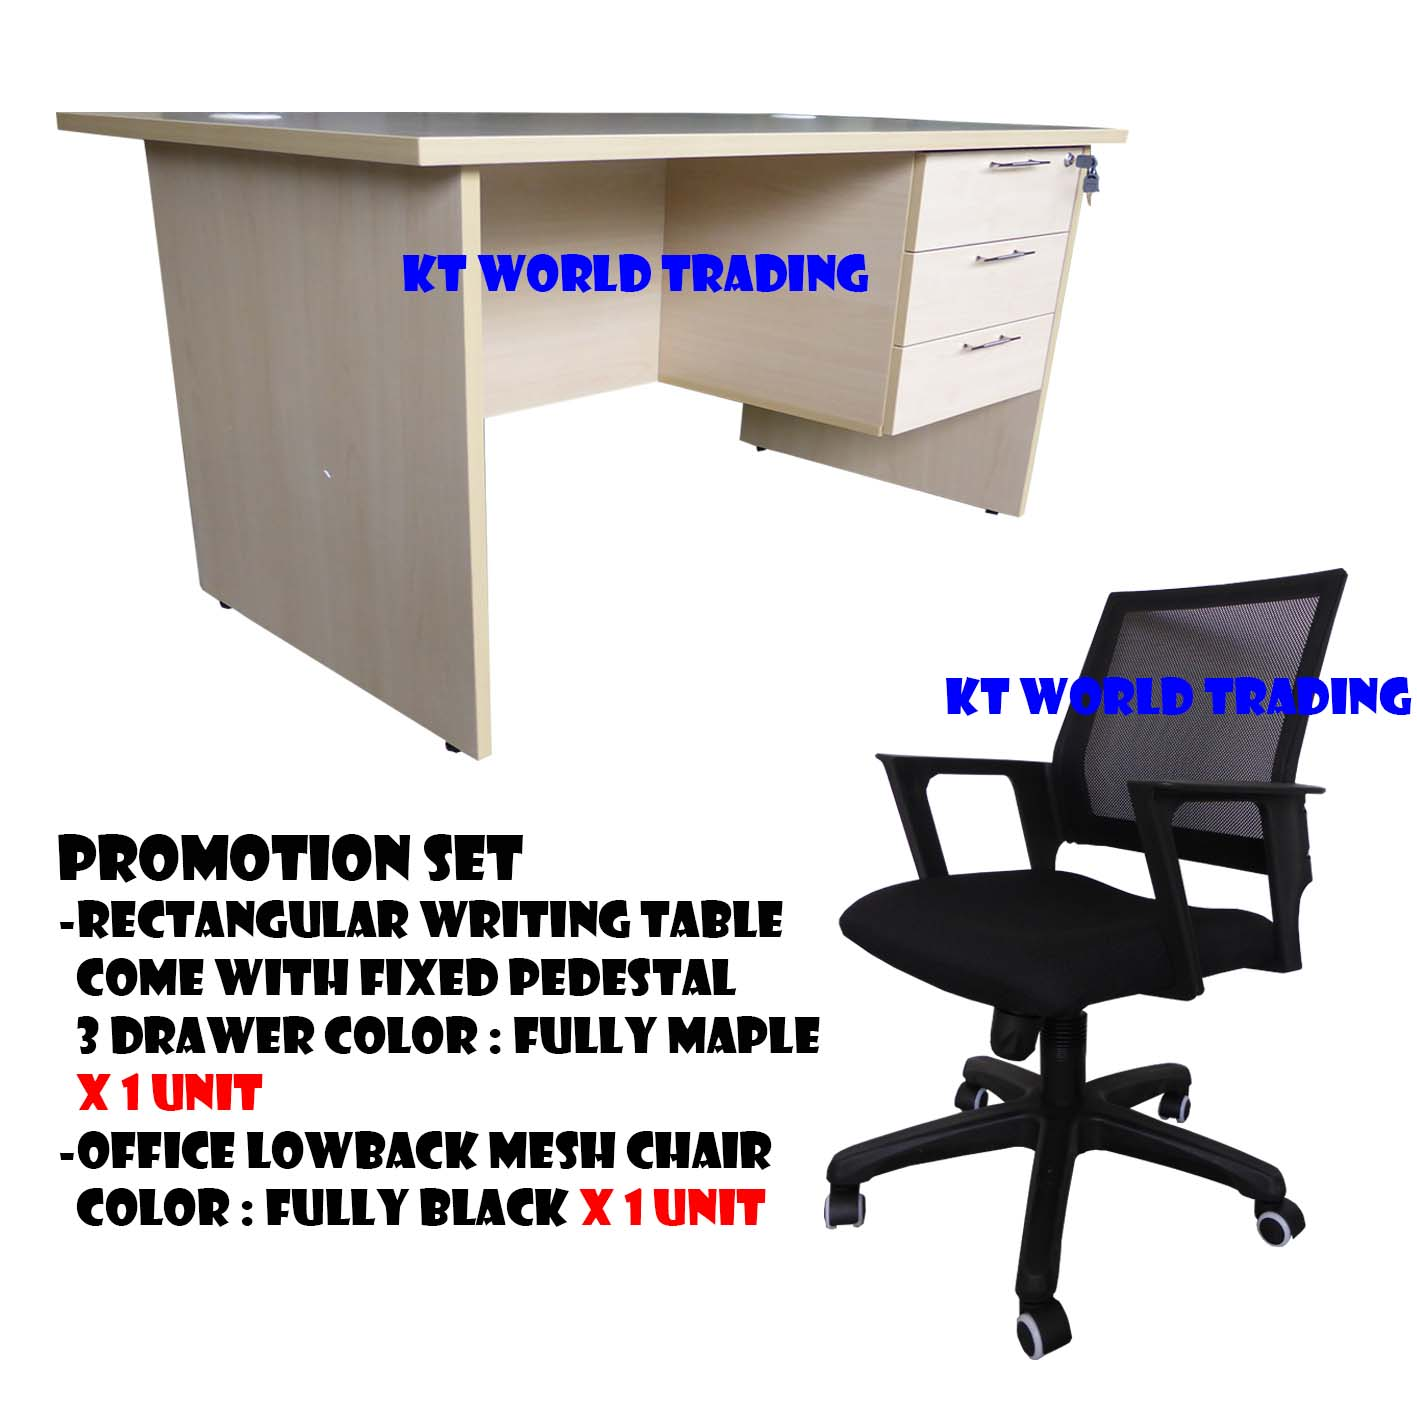 KT PS4 FURNITURE SET Writing Table C W Fixed Pedestal 3 Drawer Mesh Lowback